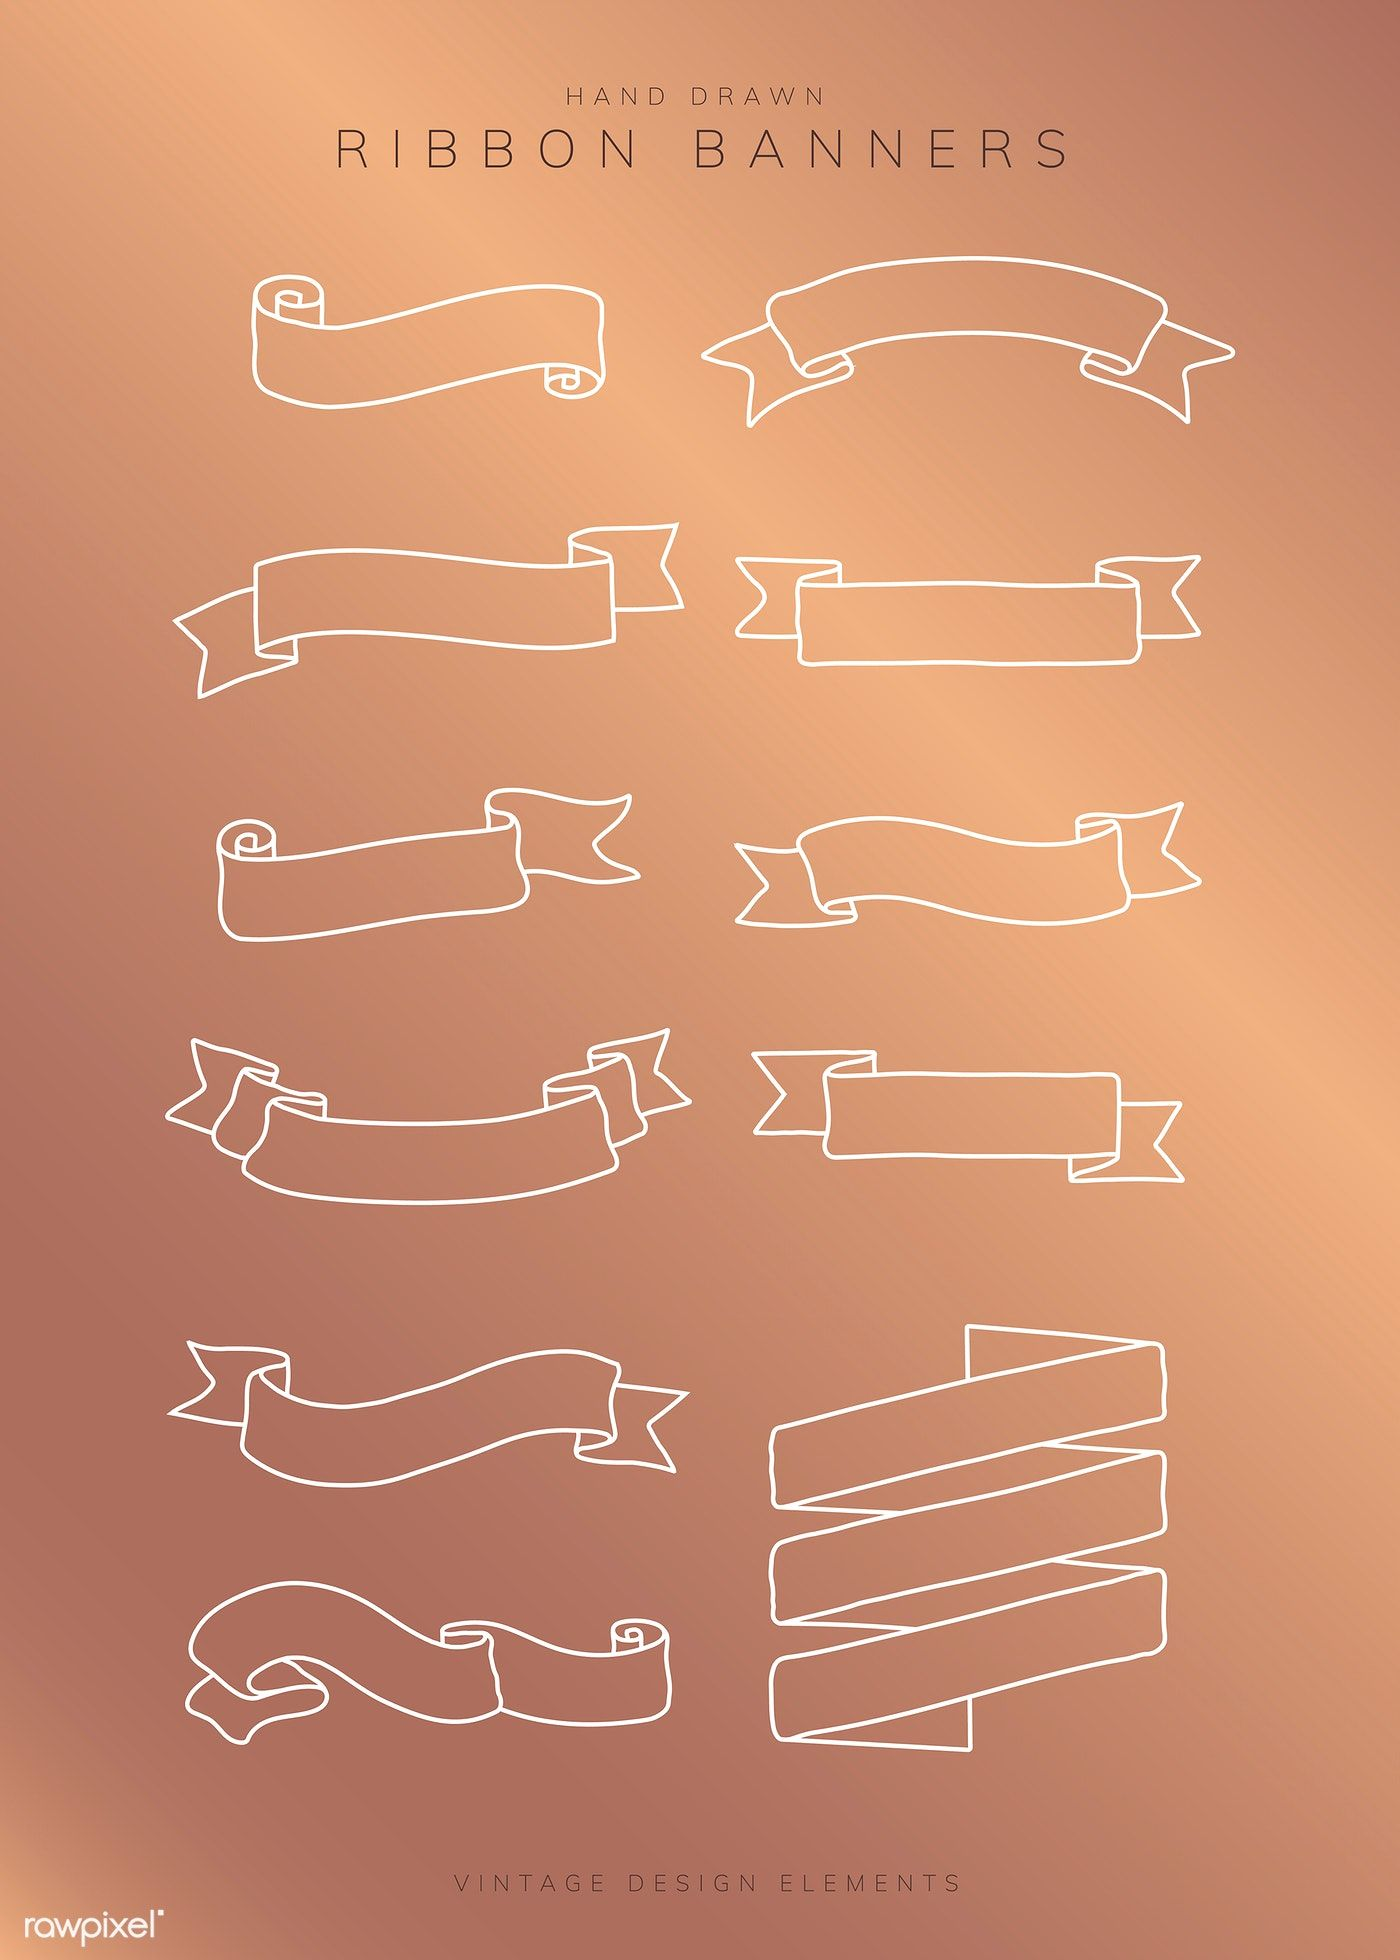 Vintage Hand Drawn Ribbon Banner Collection Vectors Free Image By Rawpixel Com Katie Moir Sasi